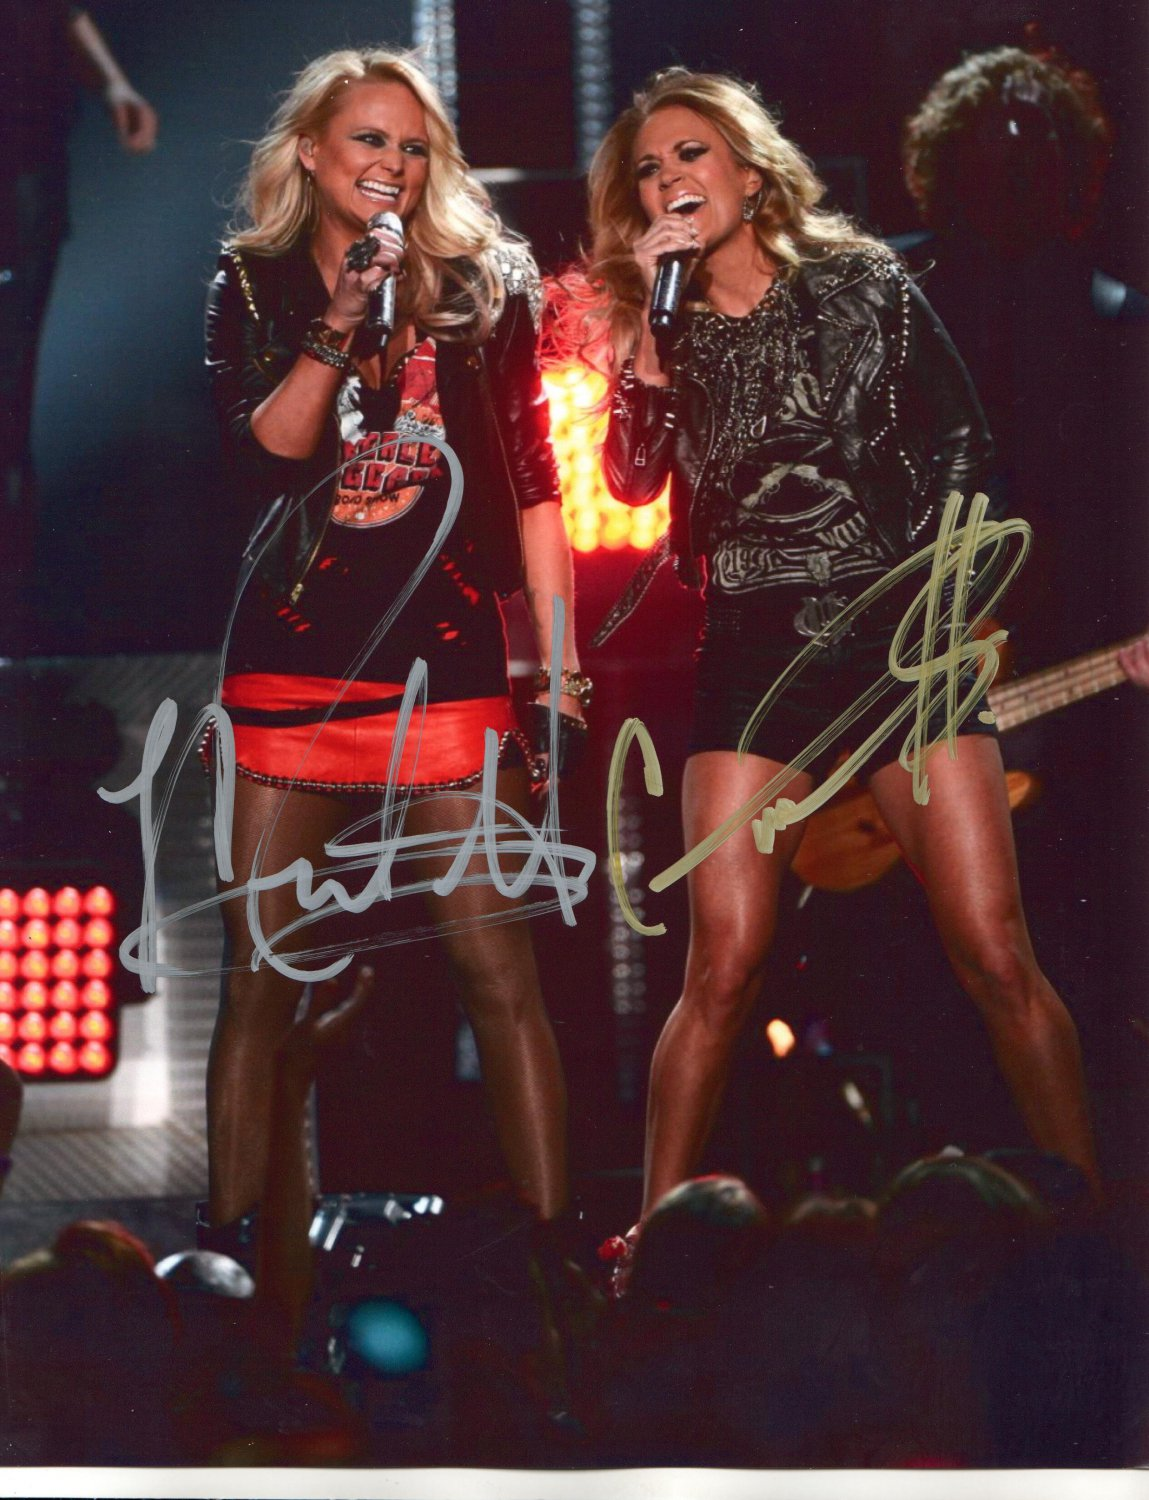 CARRIE UNDERWOOD ~ MIRANDA LAMBERT - COUNTRY DOUBLE - HAND SIGNED AUTOGRAPHED PHOTO WITH COA